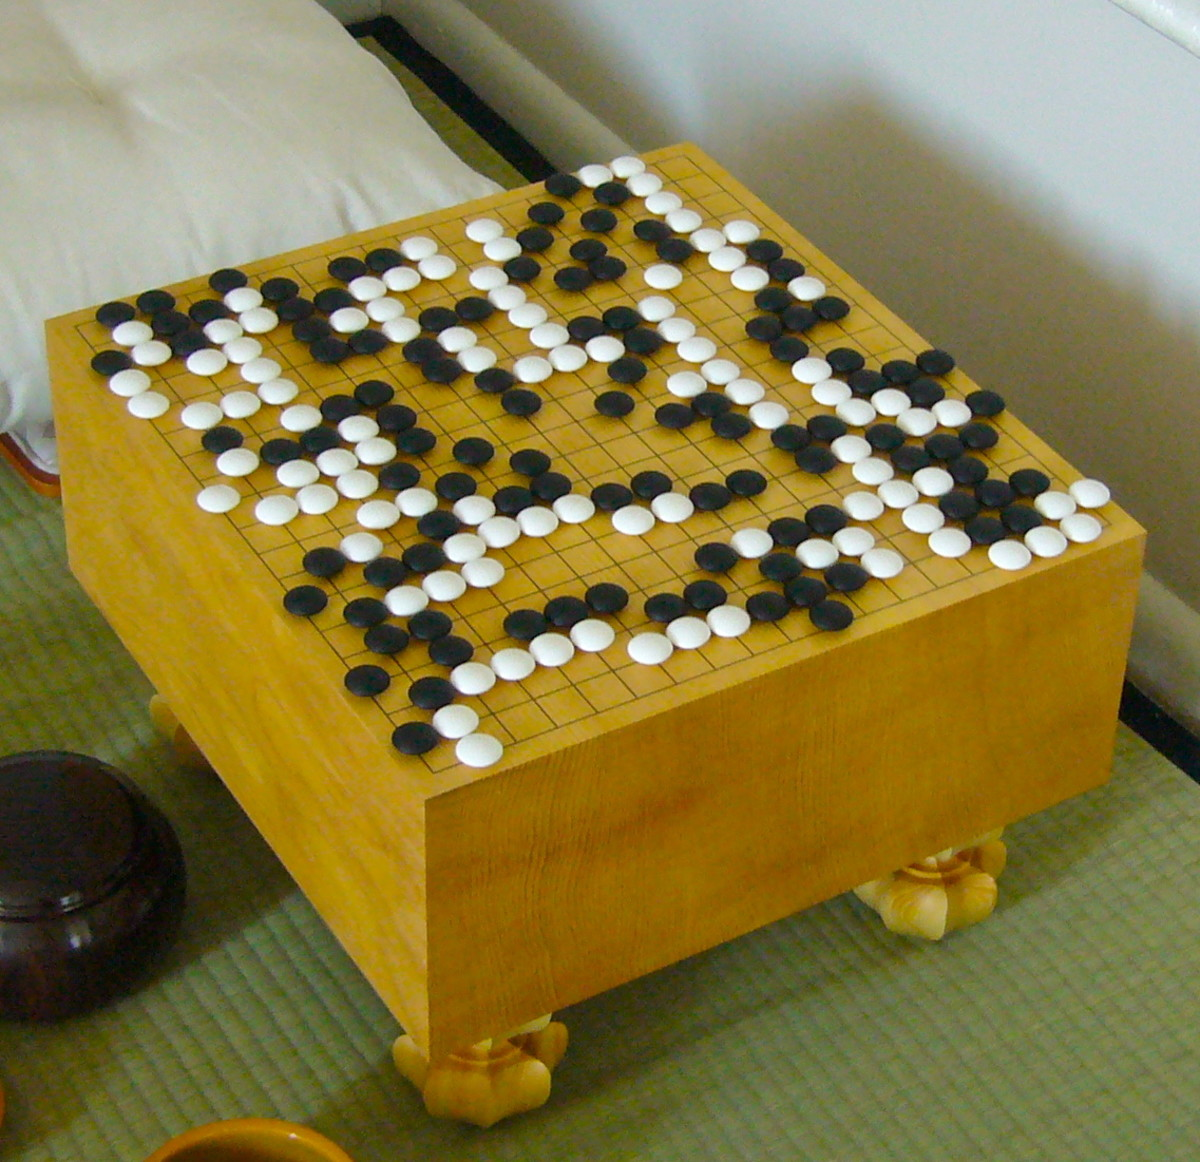 Review of The Tengu's Game of Go